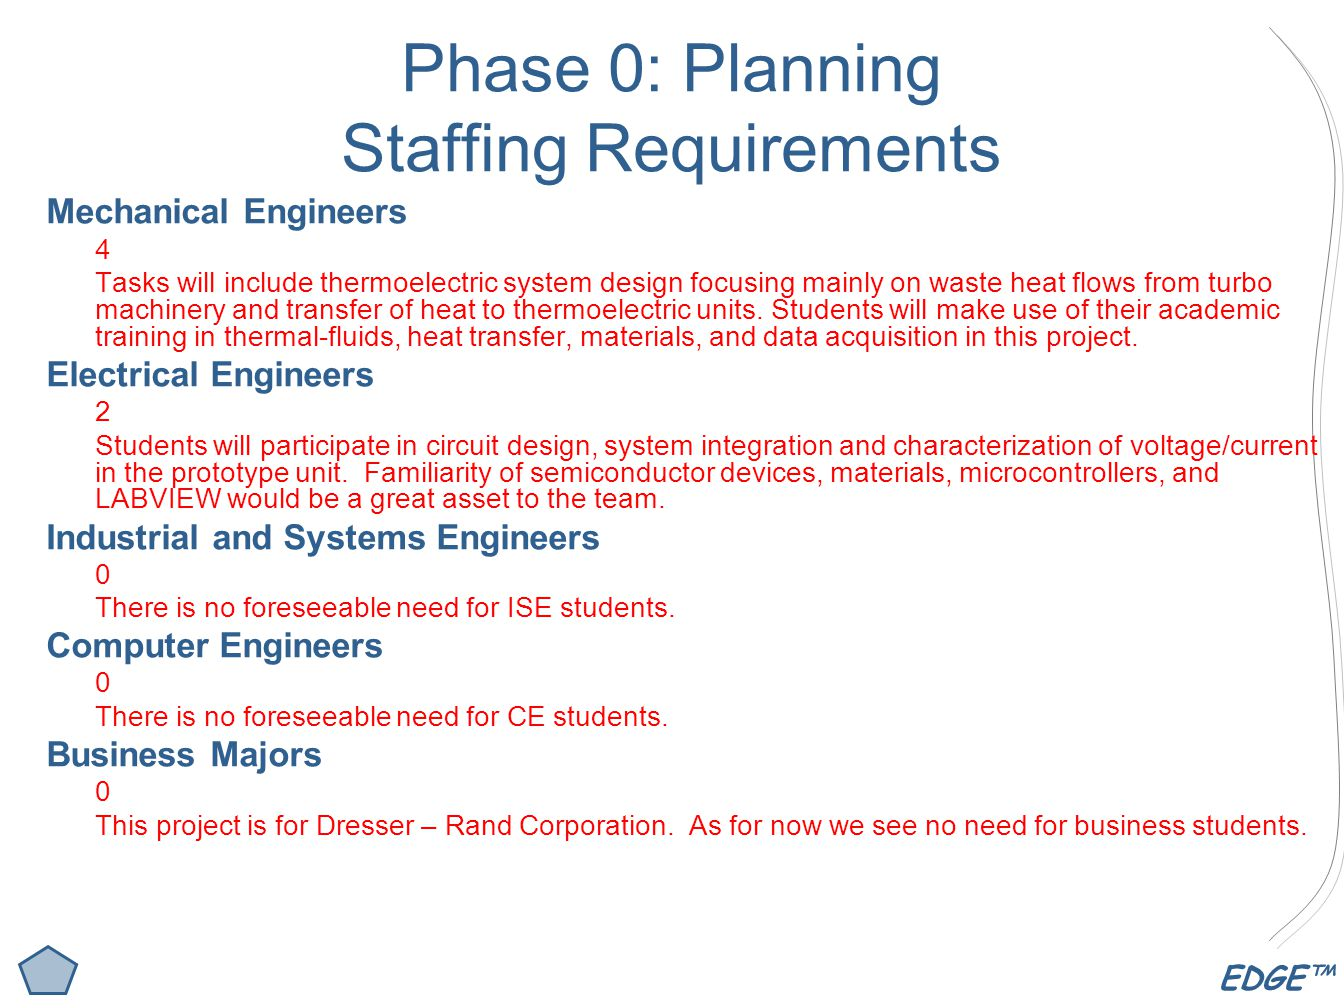 EDGE™ Phase 0: Planning Staffing Requirements Mechanical Engineers 4 Tasks will include thermoelectric system design focusing mainly on waste heat flows from turbo machinery and transfer of heat to thermoelectric units.